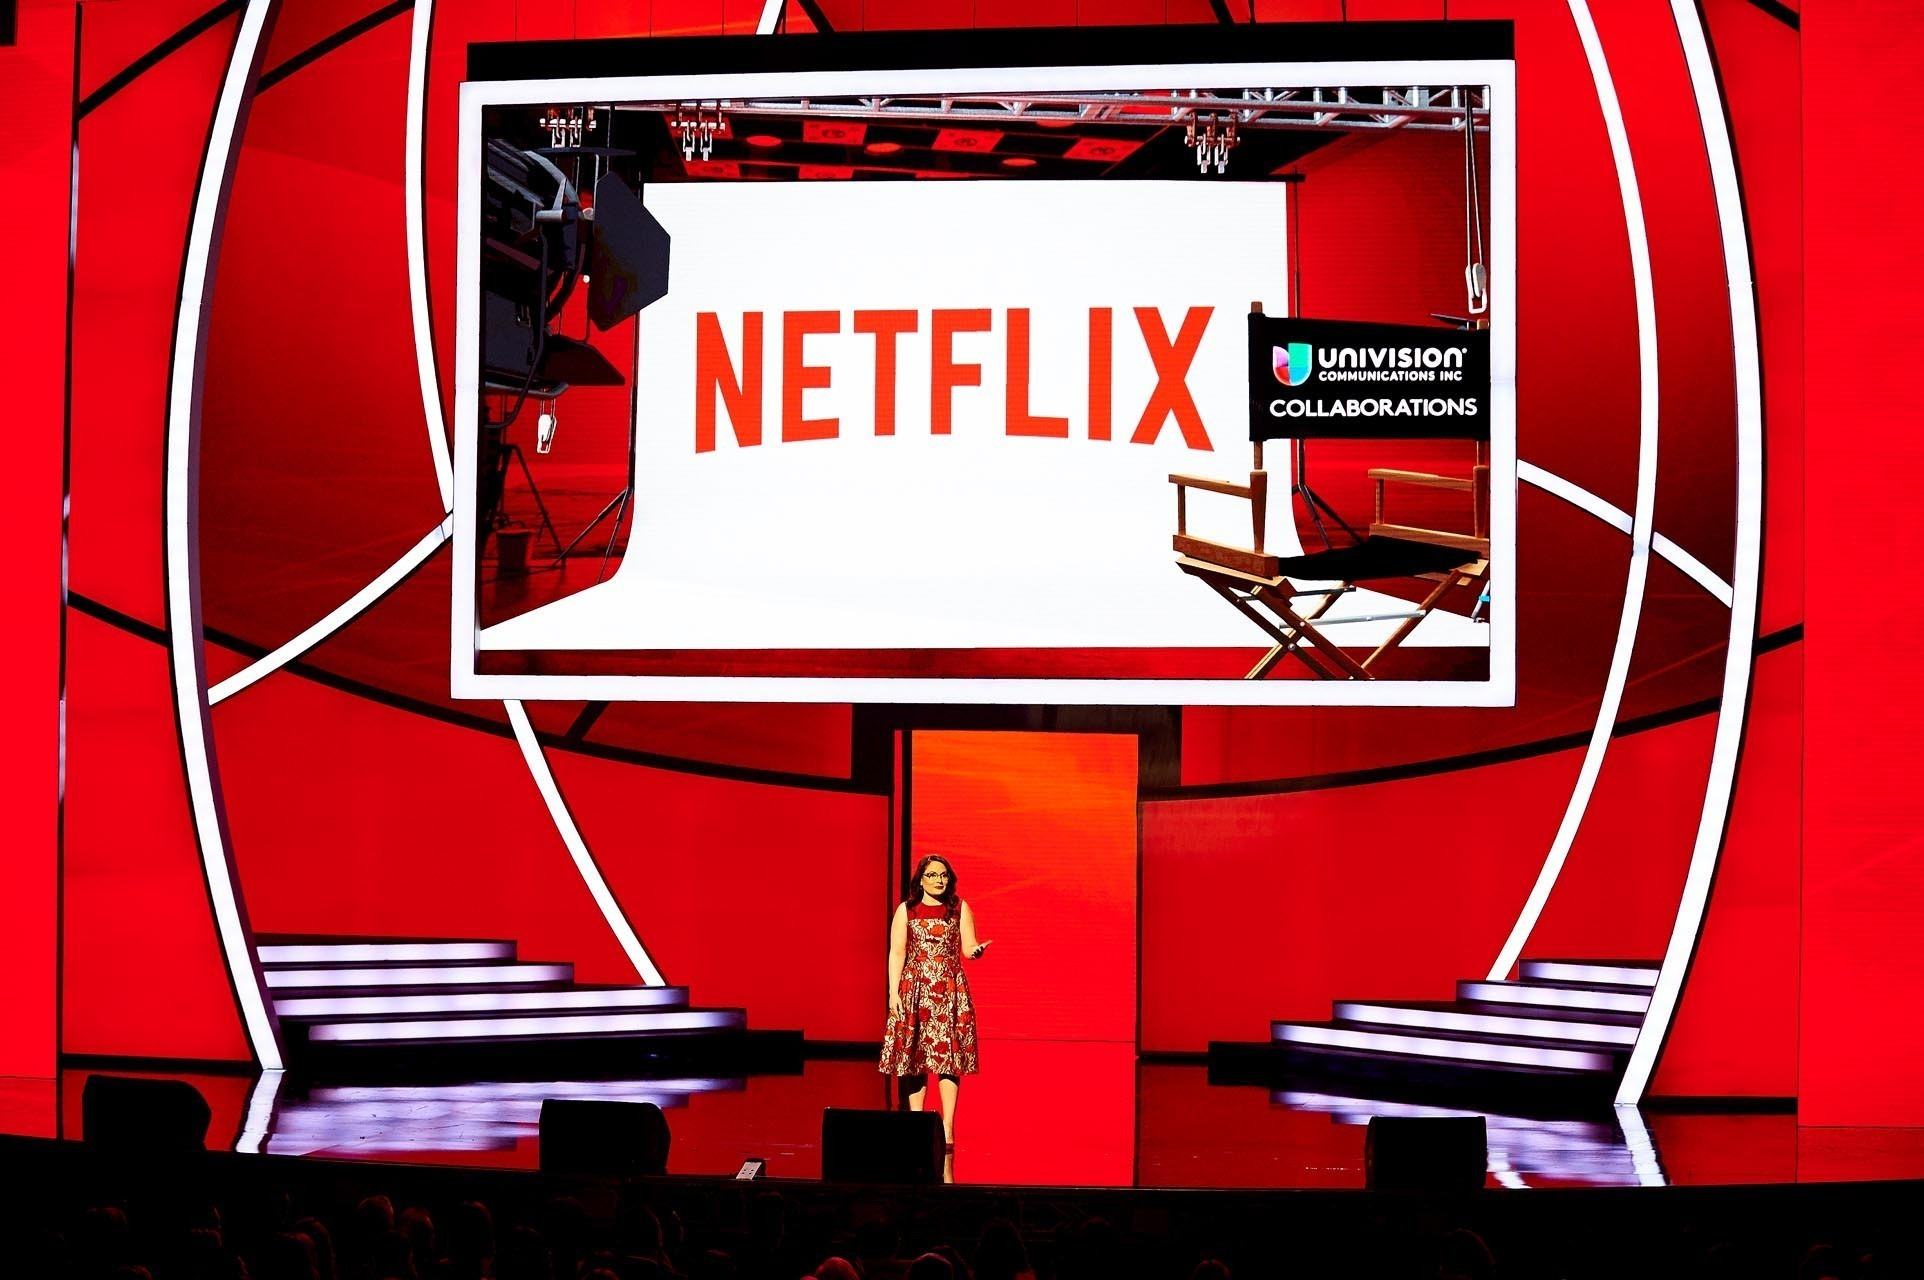 Univision teams with Netflix, announces new slate of programming - LA Times